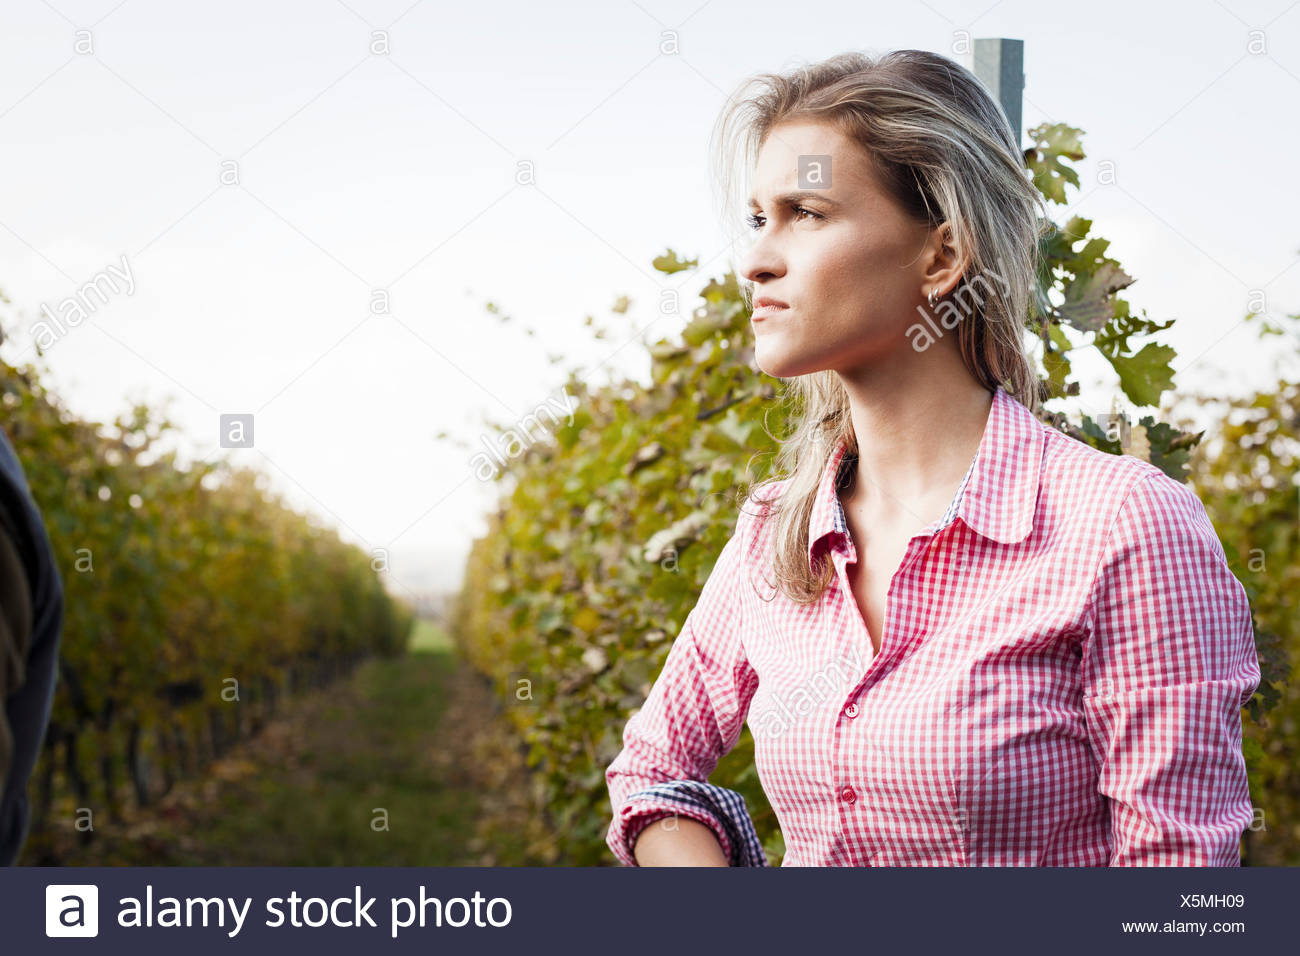 Young woman harvesting grapes in vineyard - Stock Image